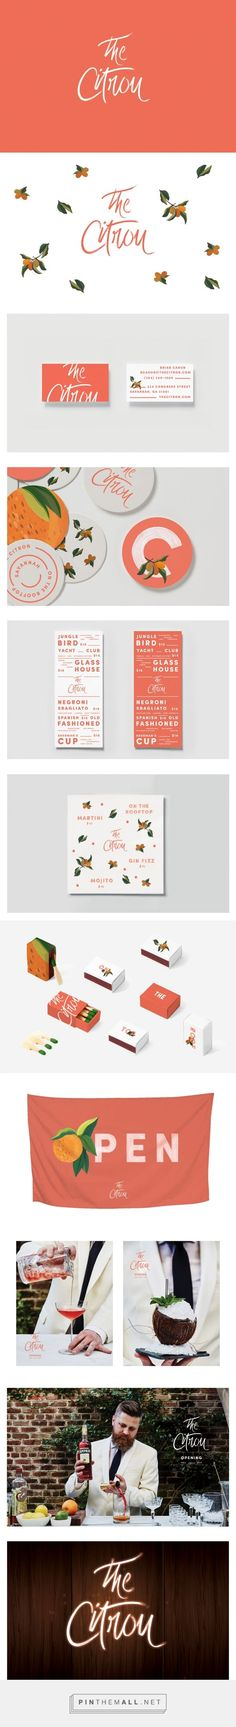 The Citron Branding / by Maud Passini beautiful hand painted elements